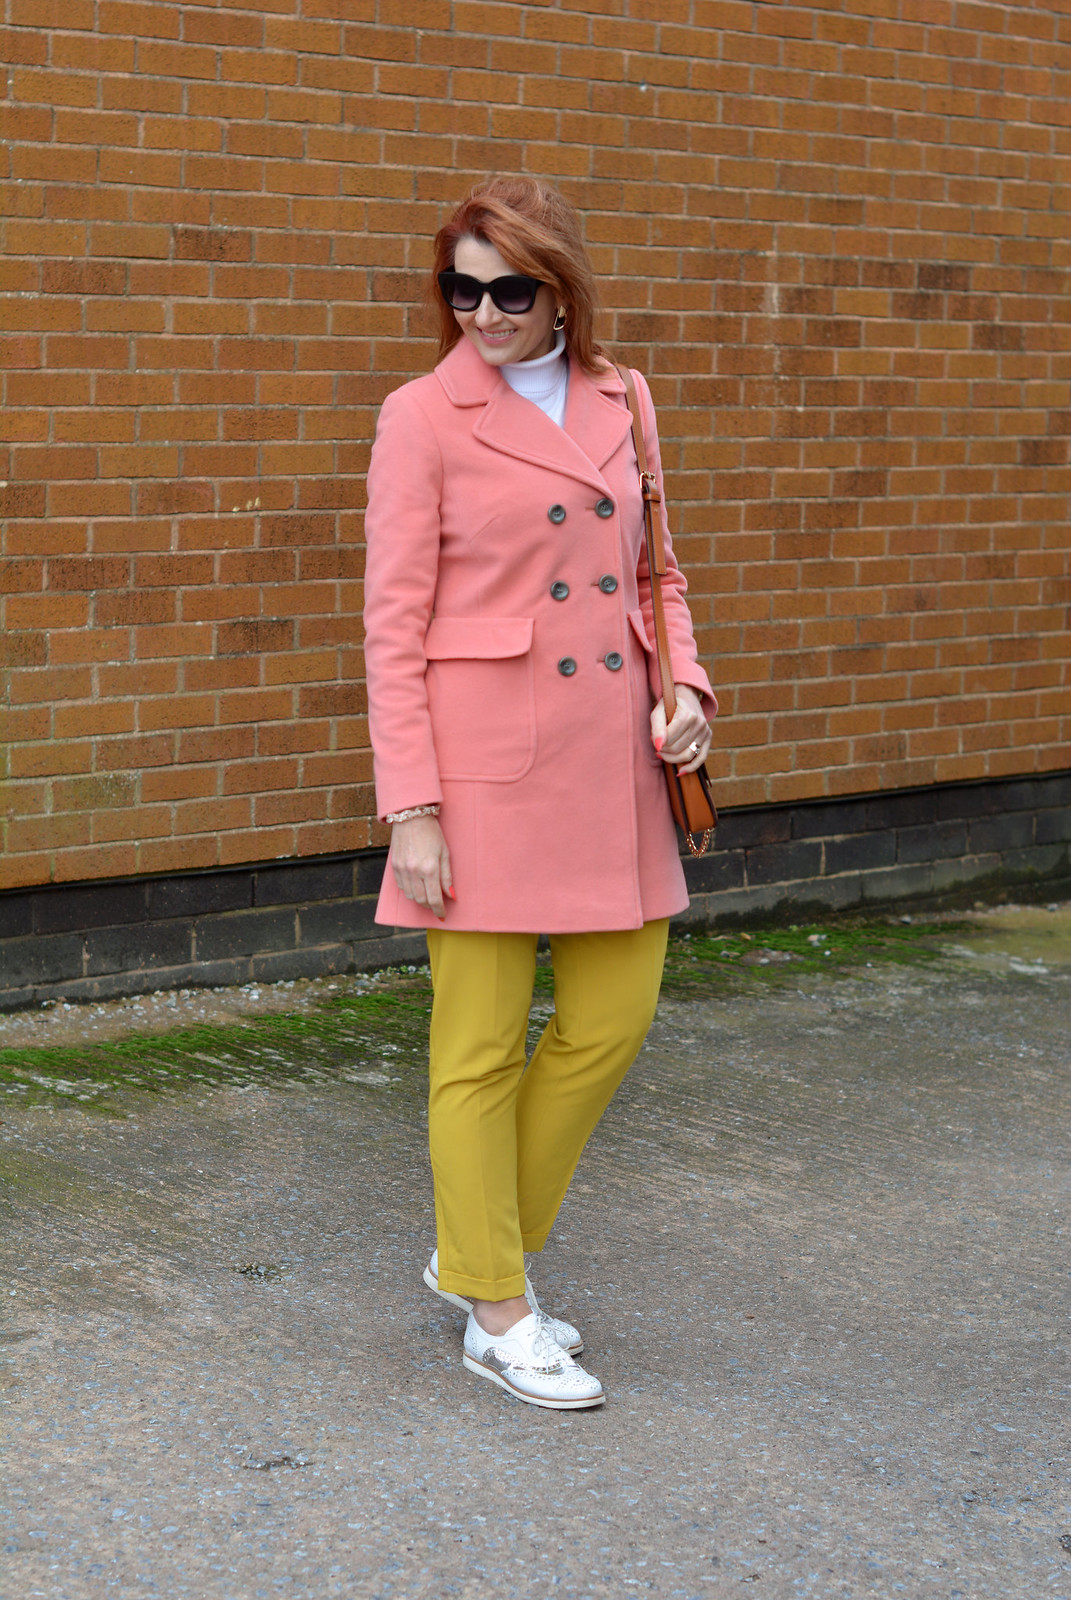 Winter style: Peach coat with mustard yellow and white | Not Dressed As Lamb